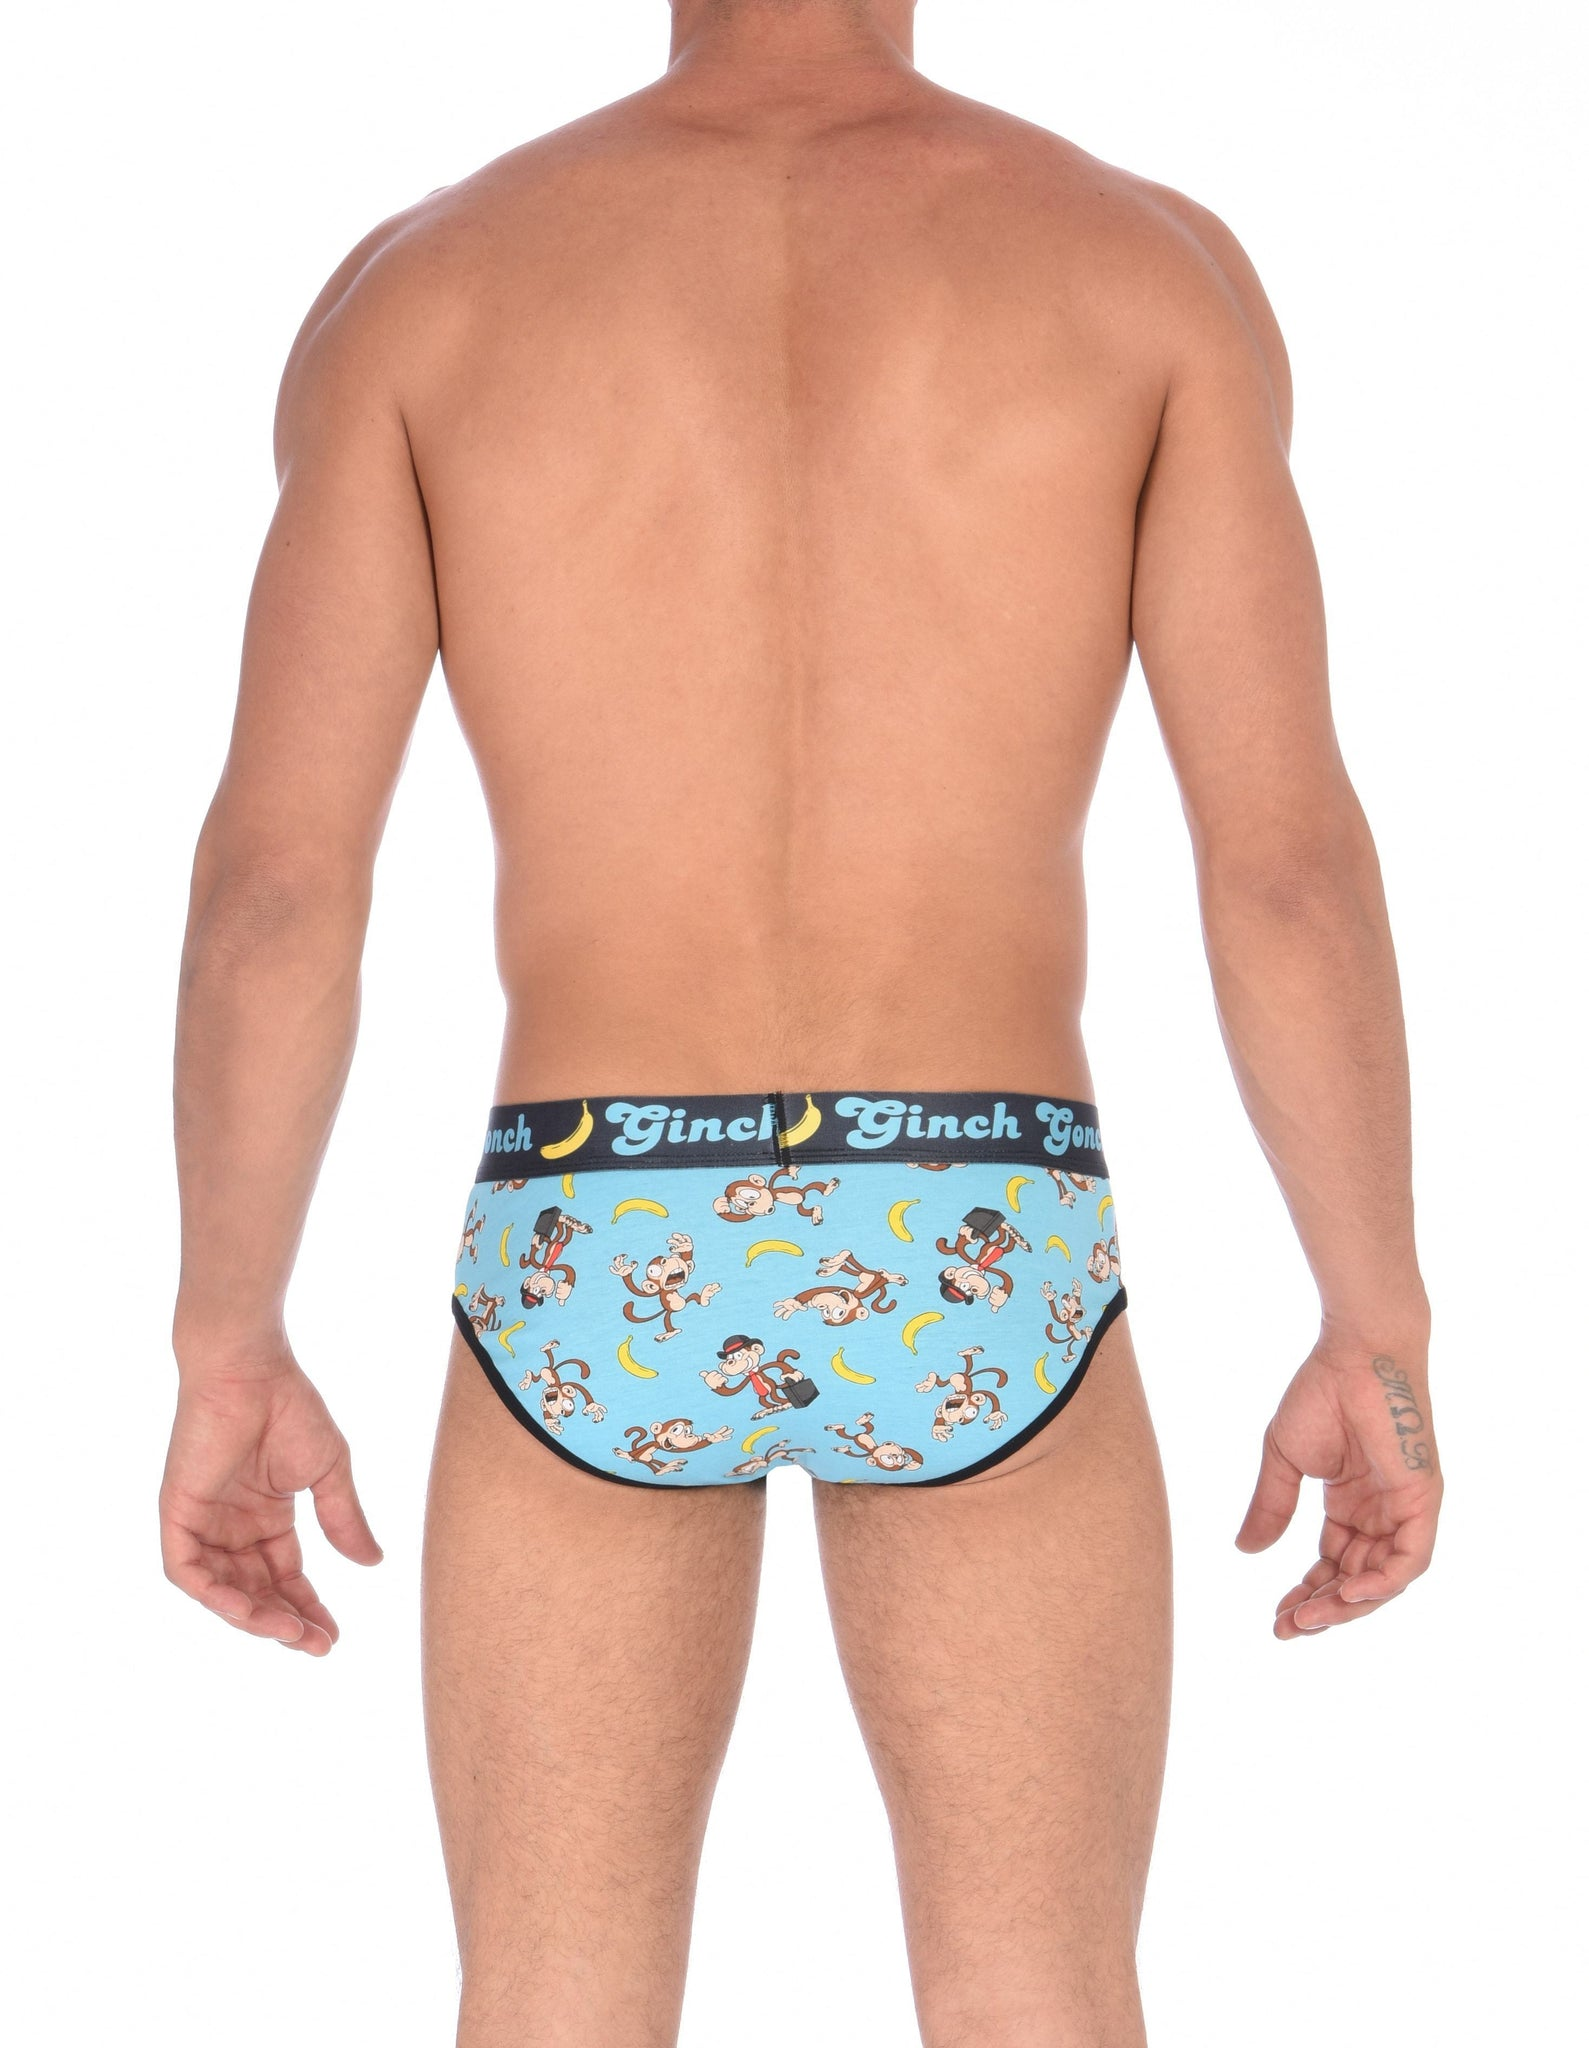 Ginch Gonch Monkey Business Men's Underwear Brief with blue background, monkeys, and bananas. Black trim and printed waistband with Ginch Gonch and bananas. Back